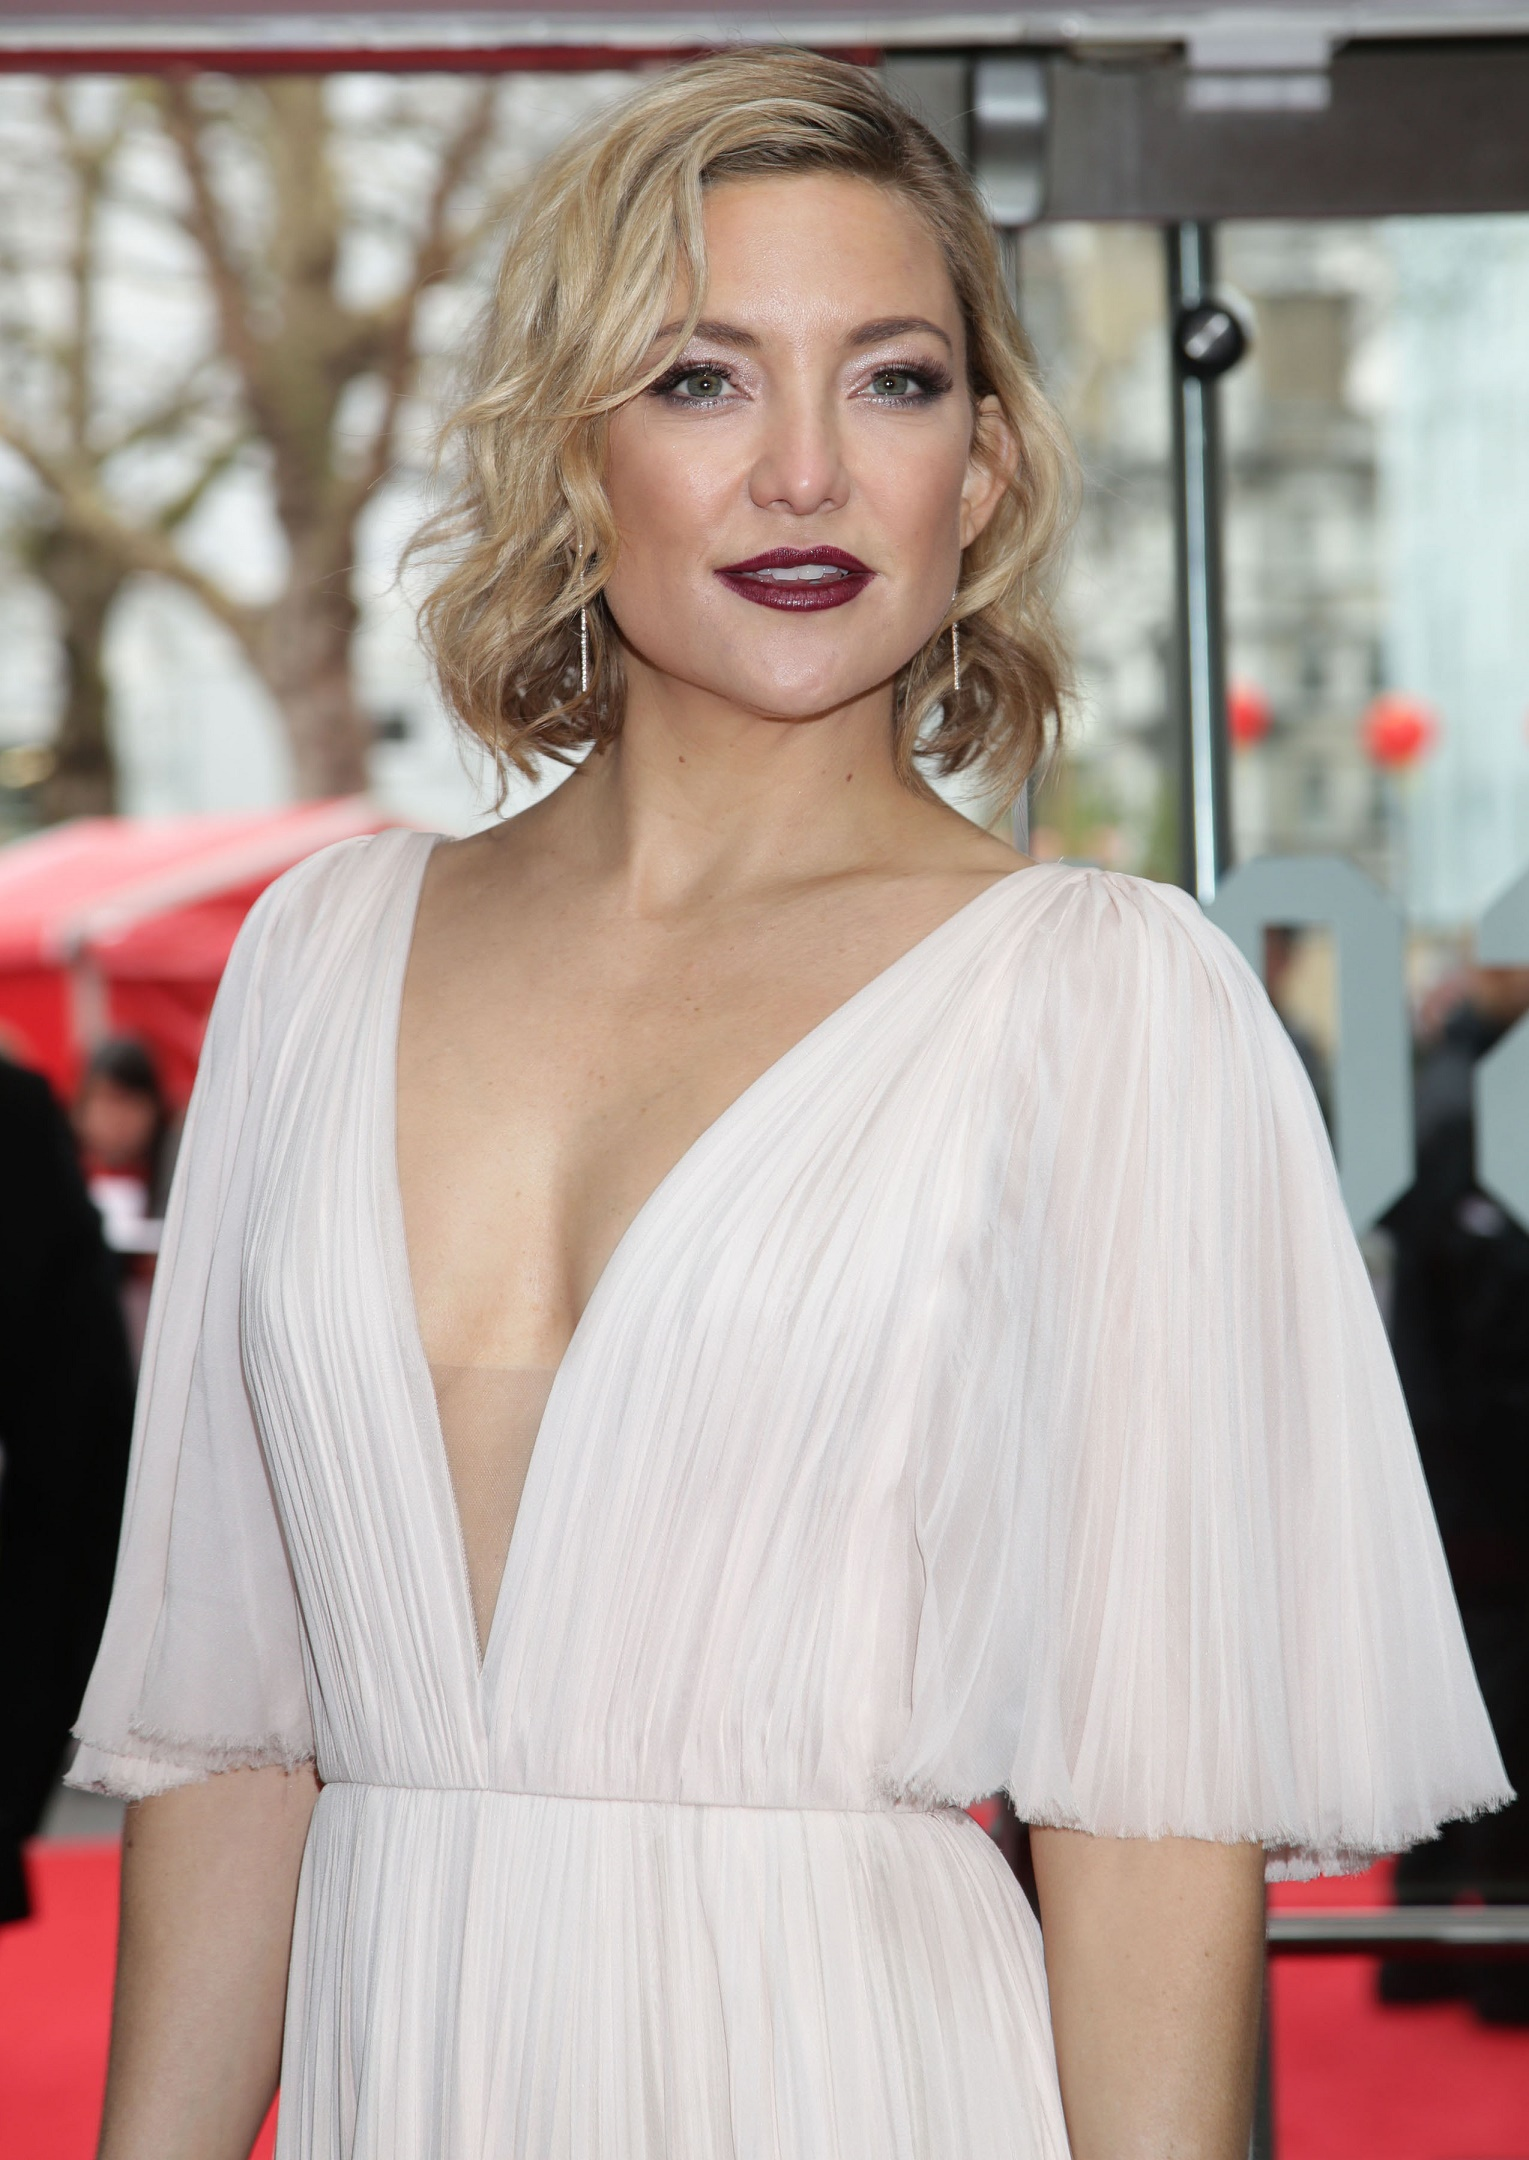 Photos Kate Hudson nudes (13 foto and video), Pussy, Bikini, Selfie, cameltoe 2017